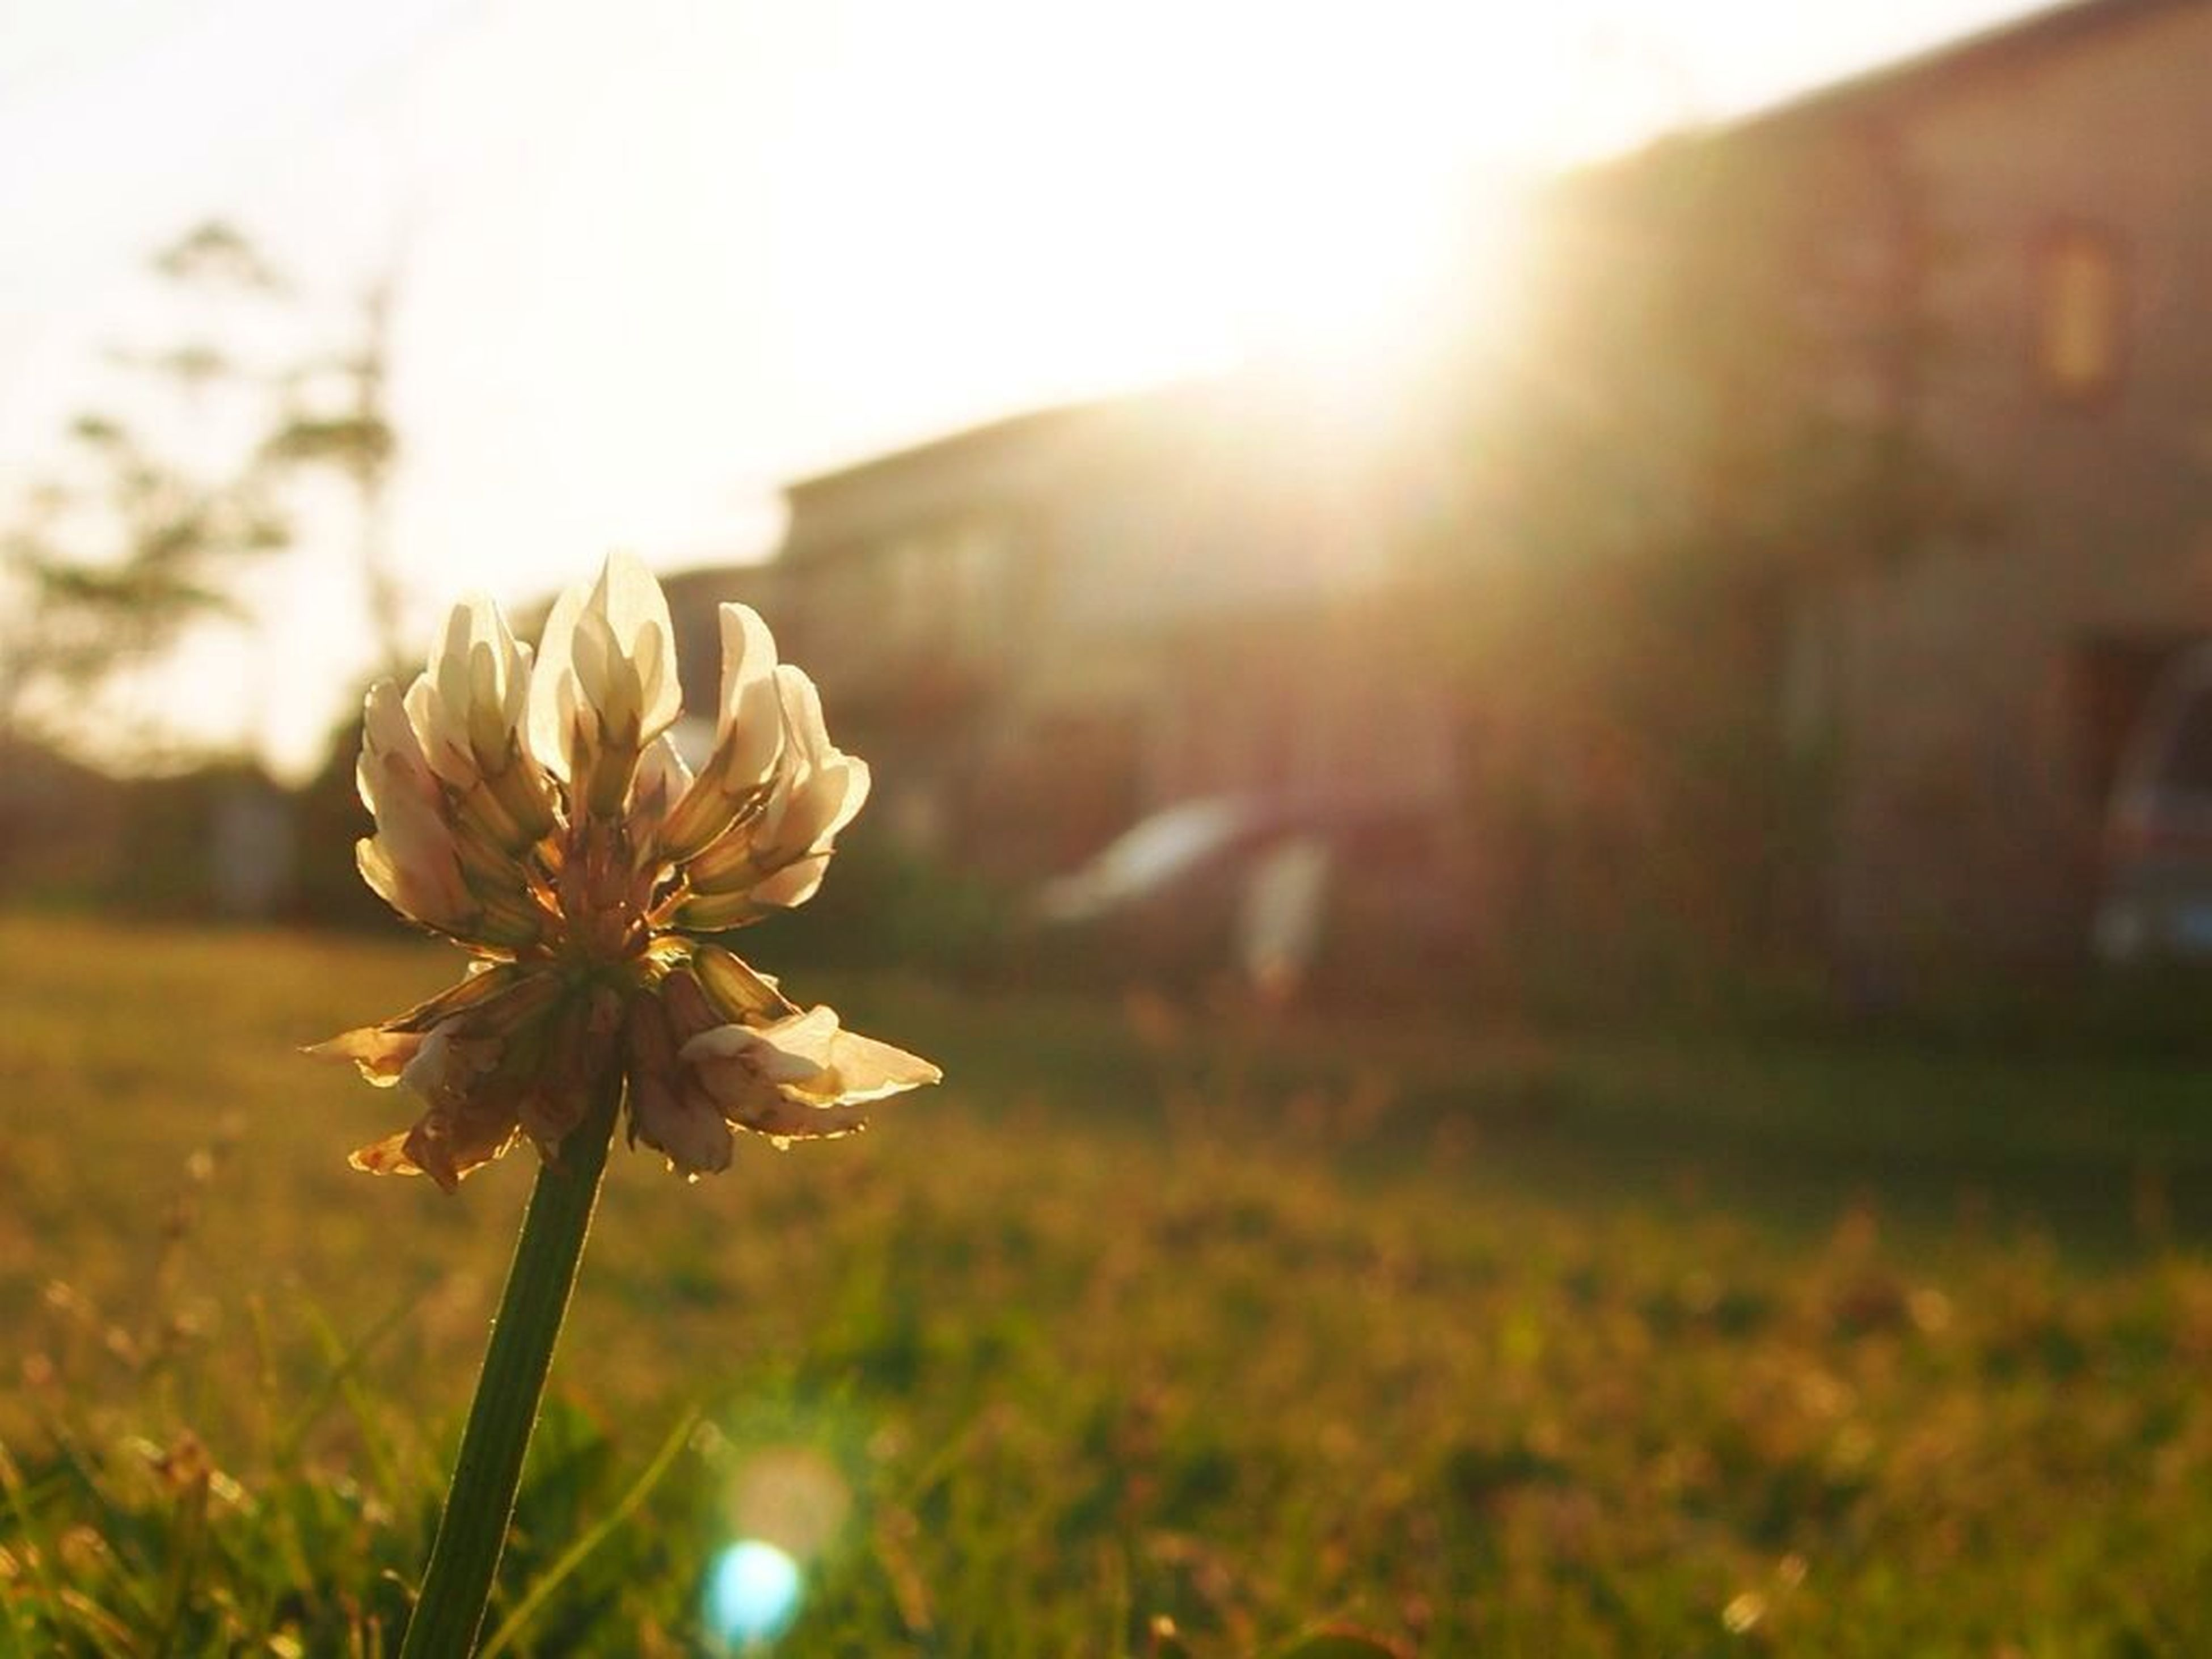 sun, flower, sunbeam, growth, lens flare, sunlight, freshness, fragility, plant, focus on foreground, building exterior, built structure, nature, grass, beauty in nature, architecture, close-up, petal, sunset, stem